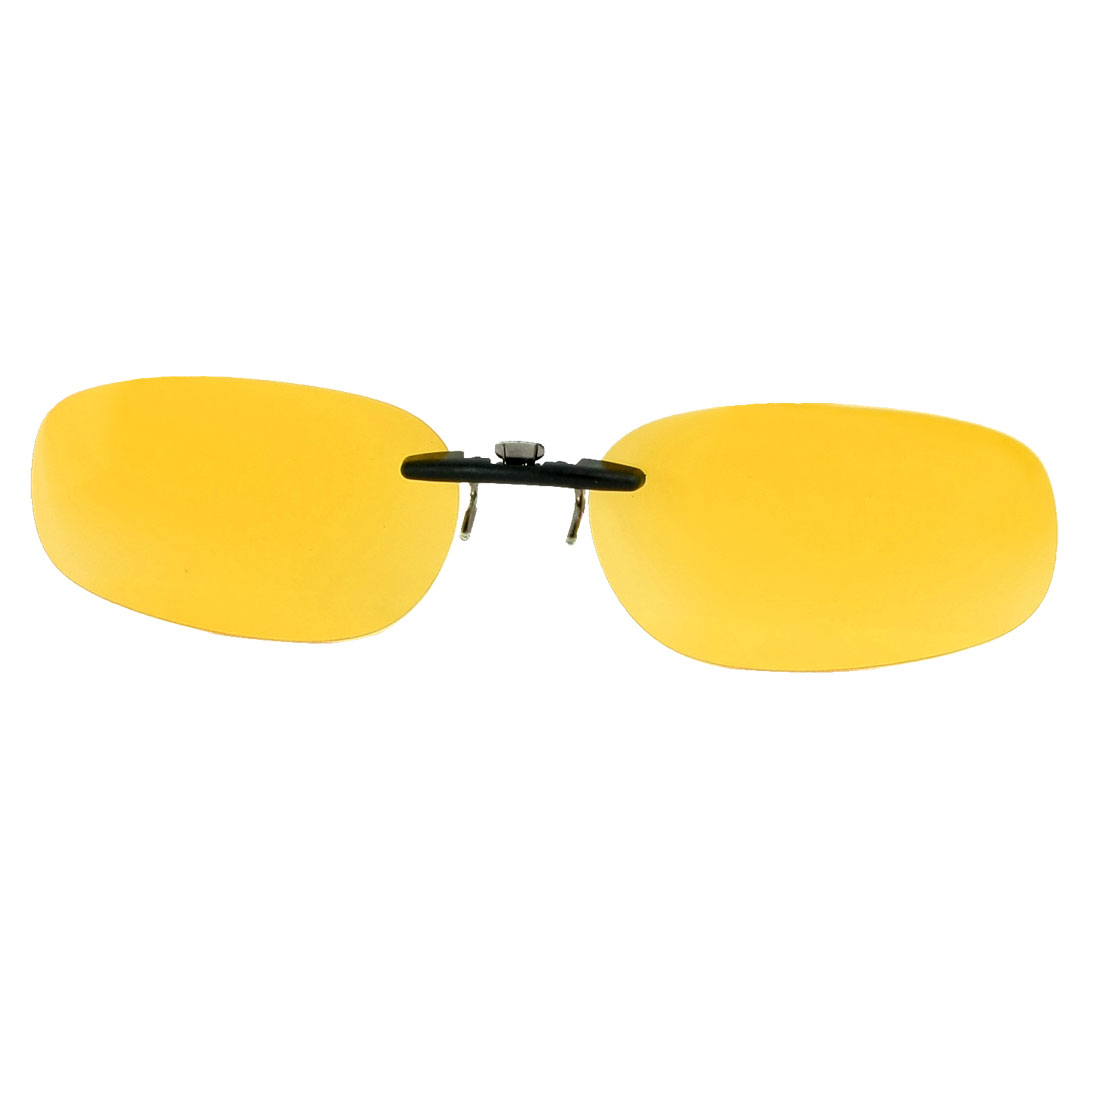 Clear Yellow Oval Shape Lens Rimless Clip on Polarized Sunglasses for Man Woman